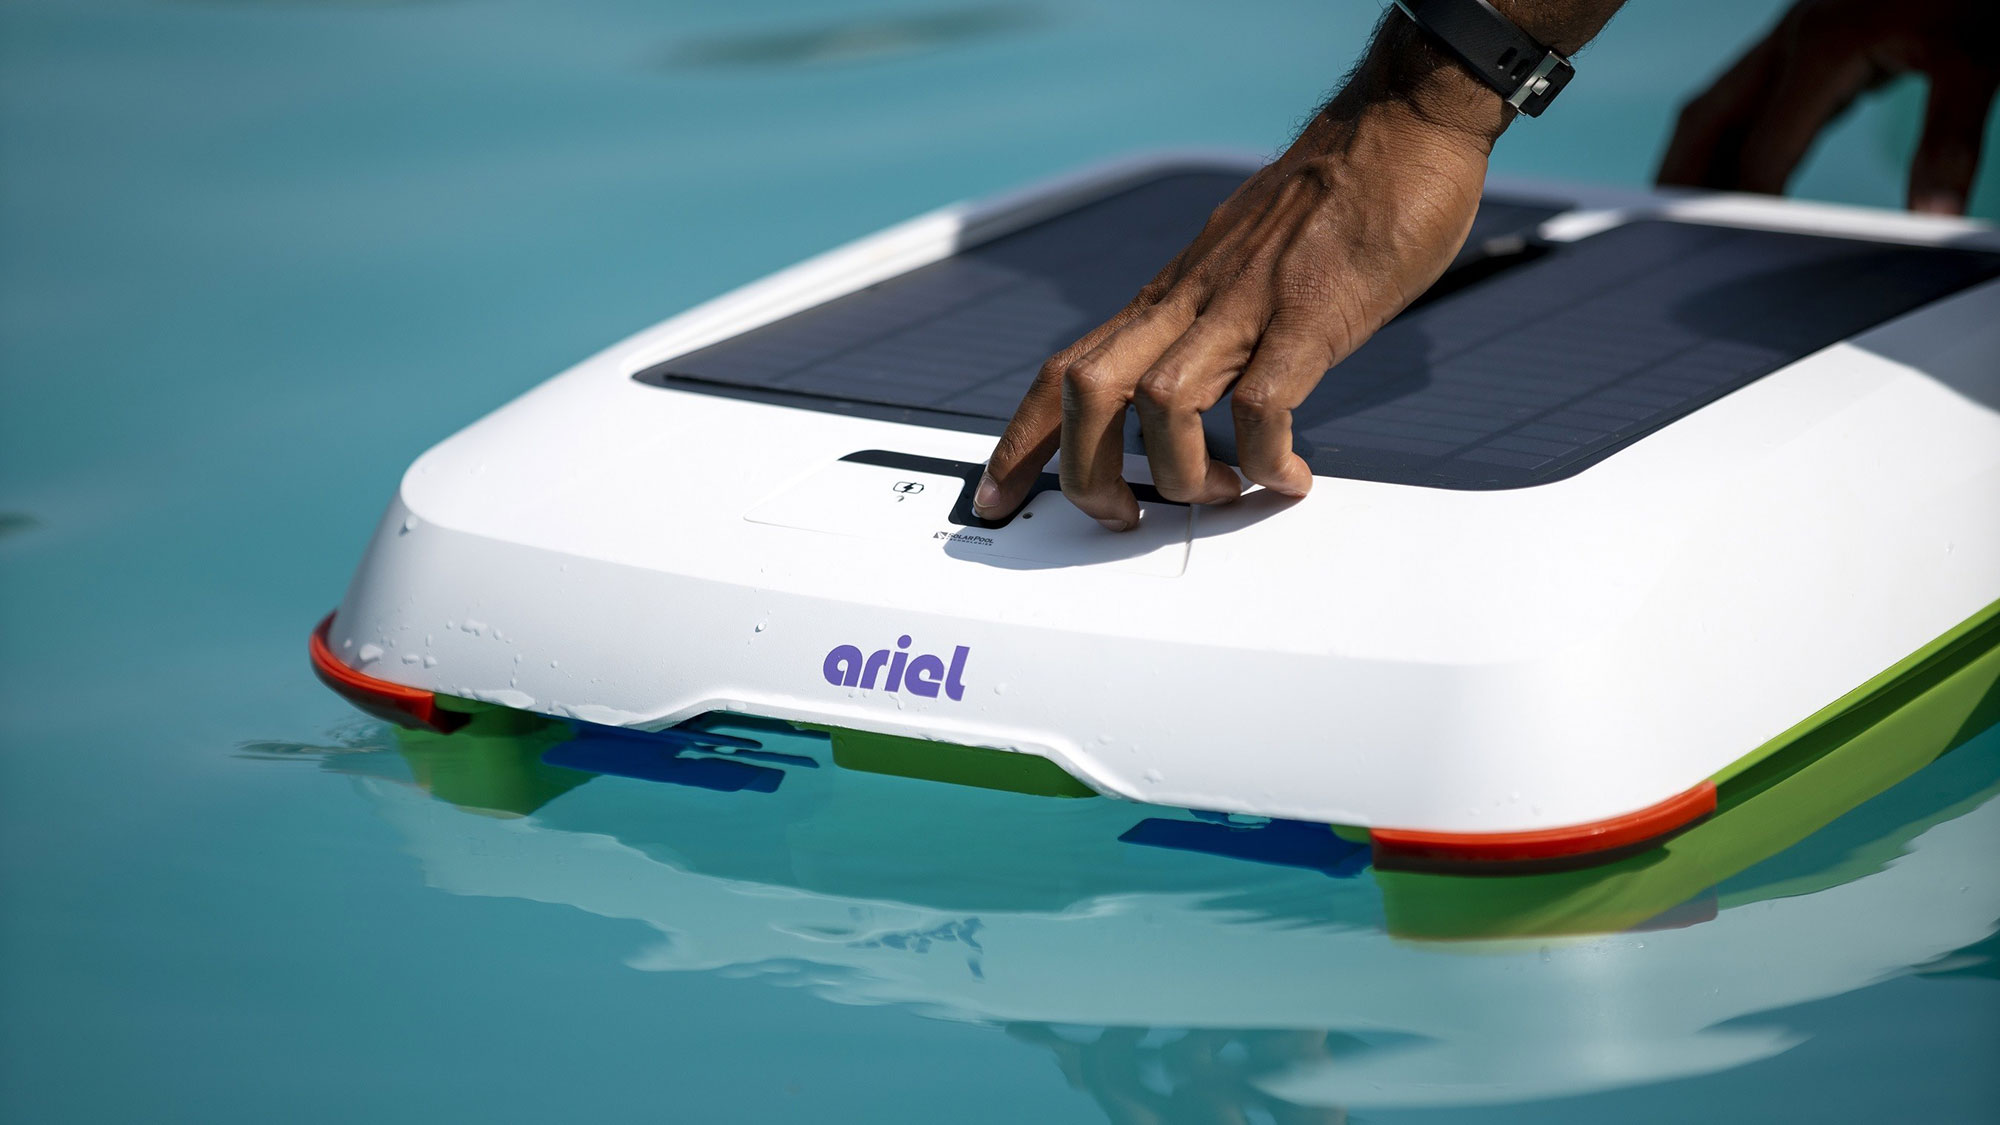 Ariel Pool Cleaner by Solar Breeze